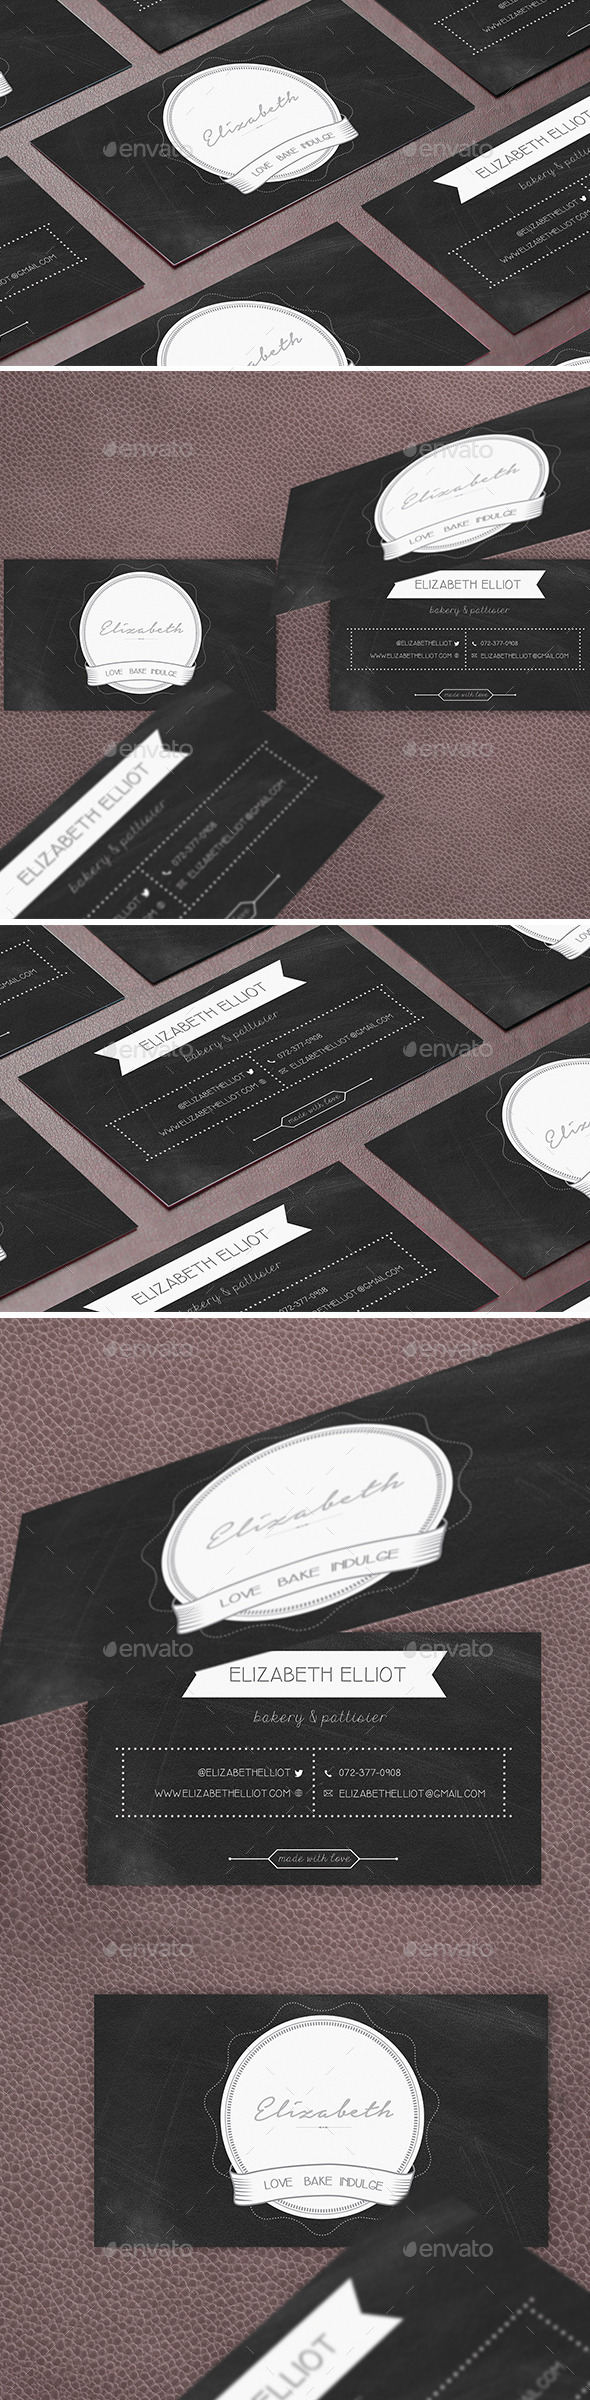 Business Card Template Bakery - Creative Business Cards